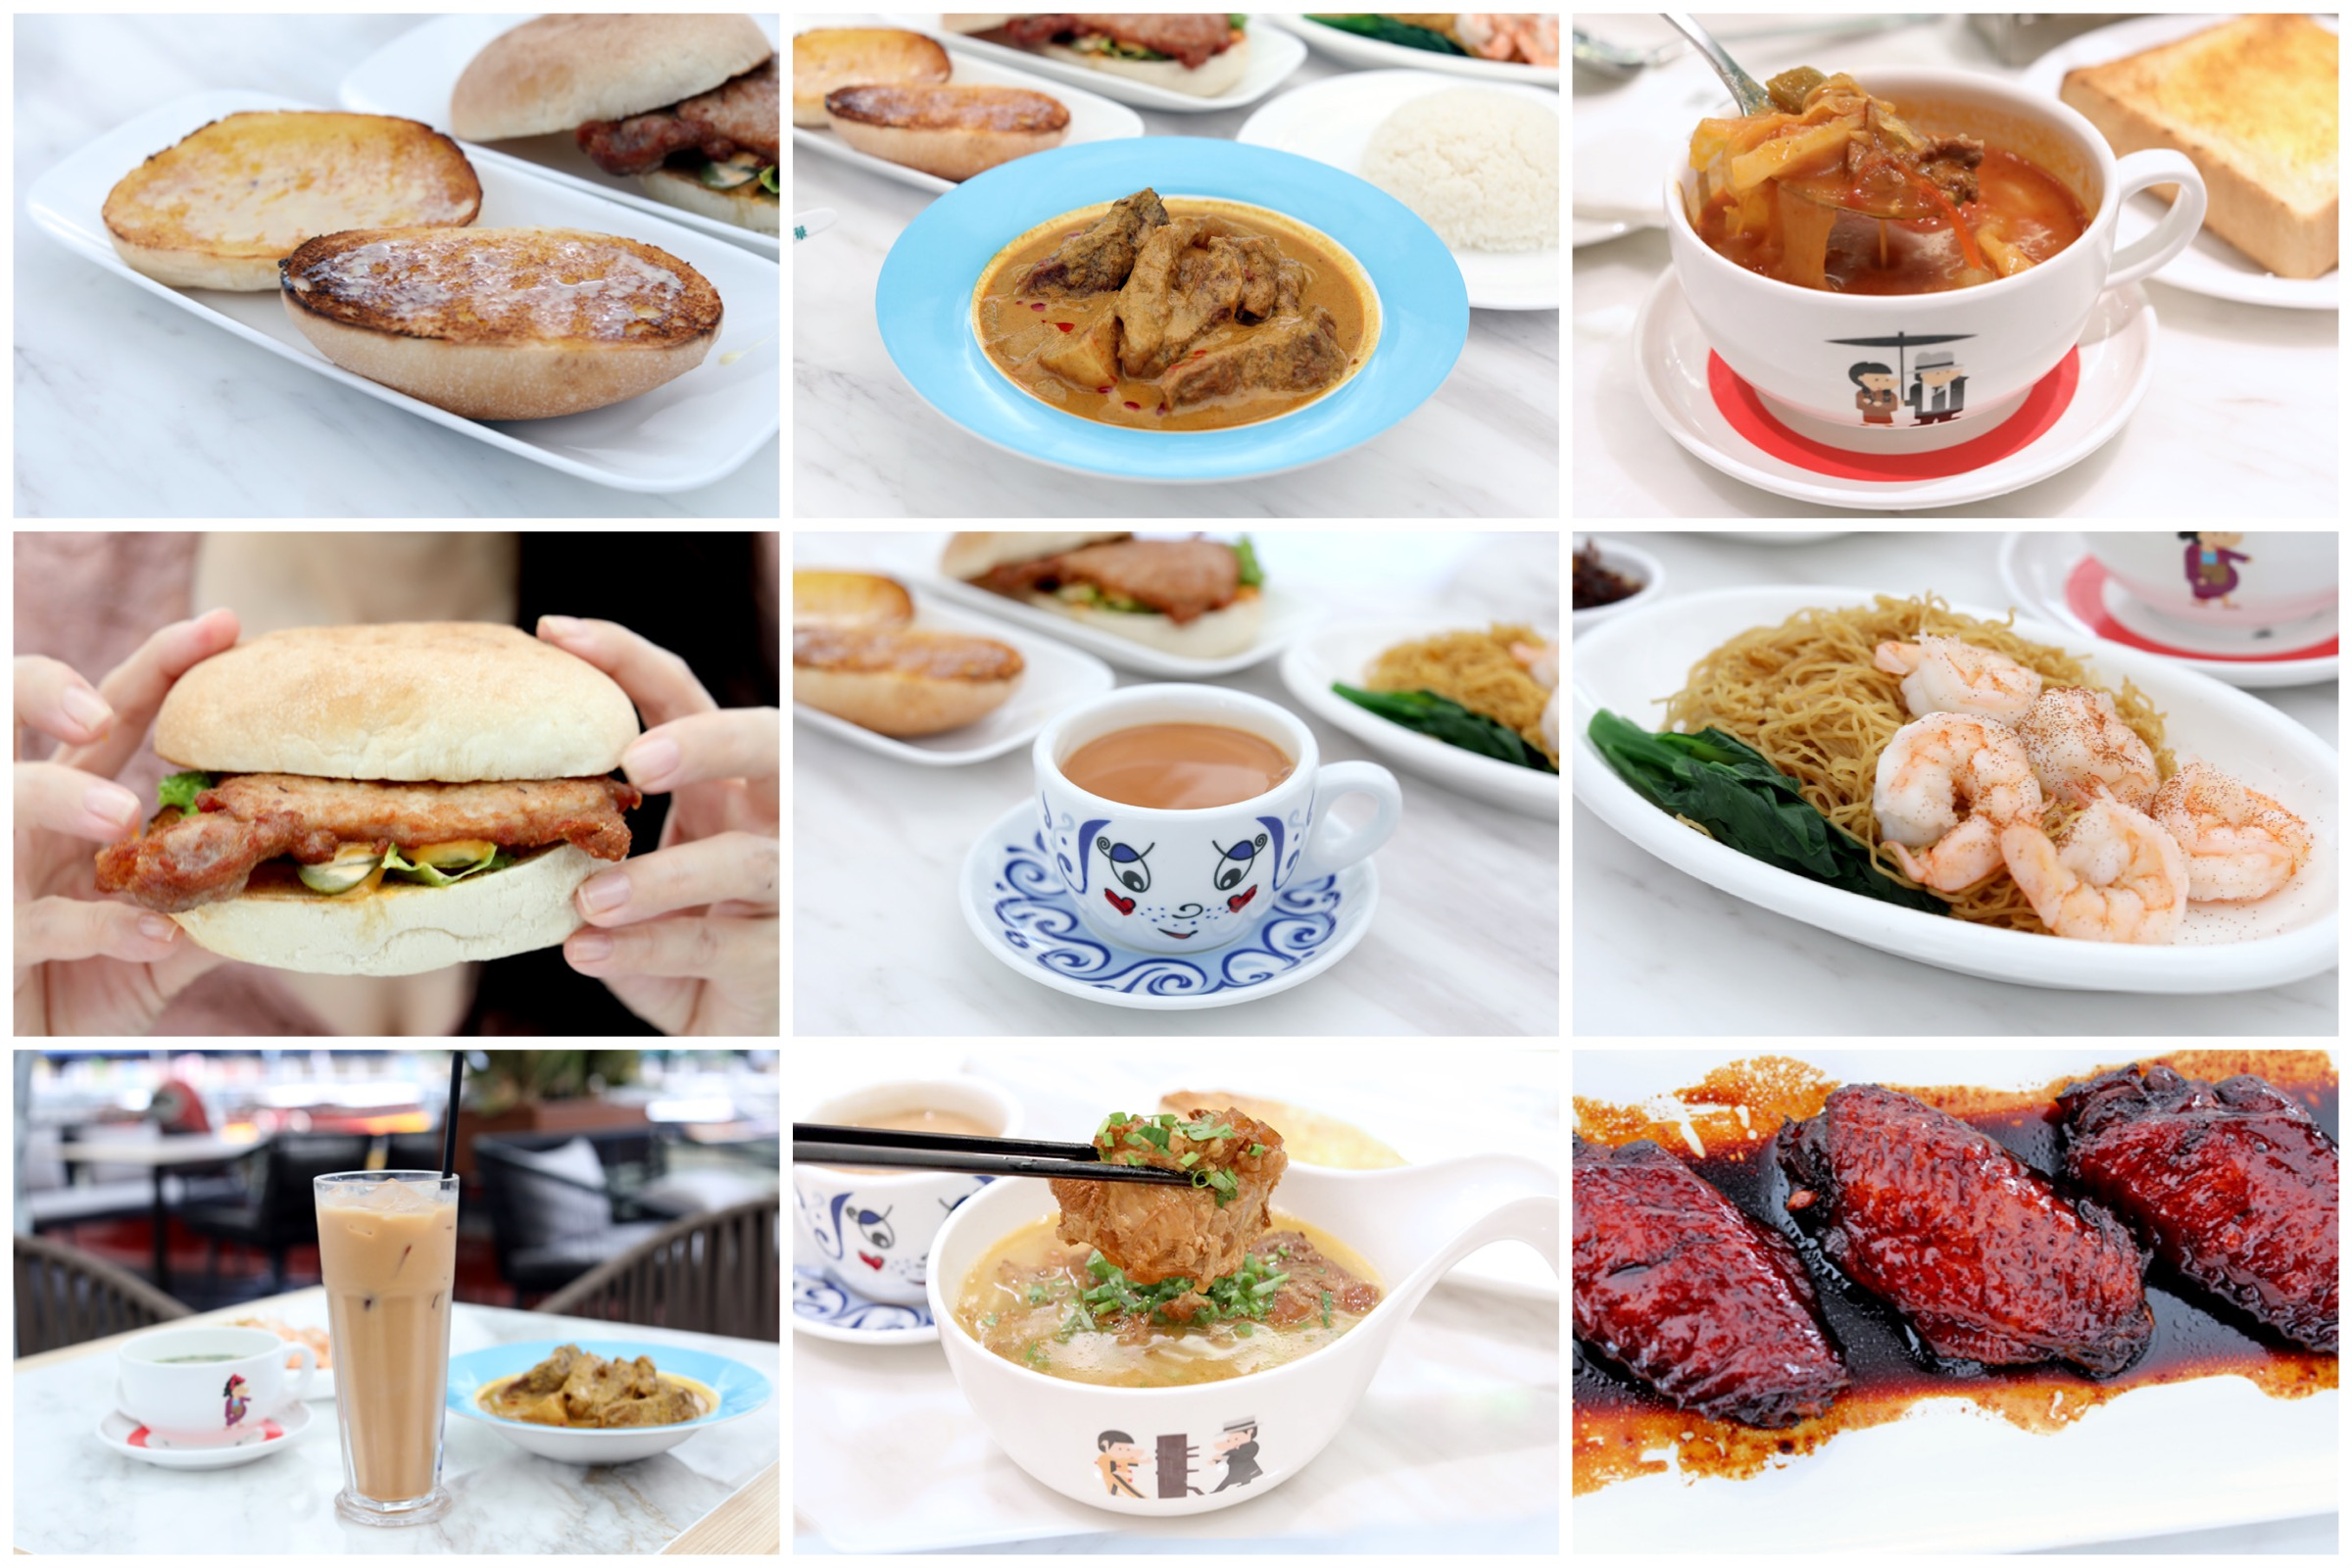 Tsui Wah Singapore – Popular Hong Kong Cafe At Clarke Quay, Opens For Supper Till 1:30AM Daily